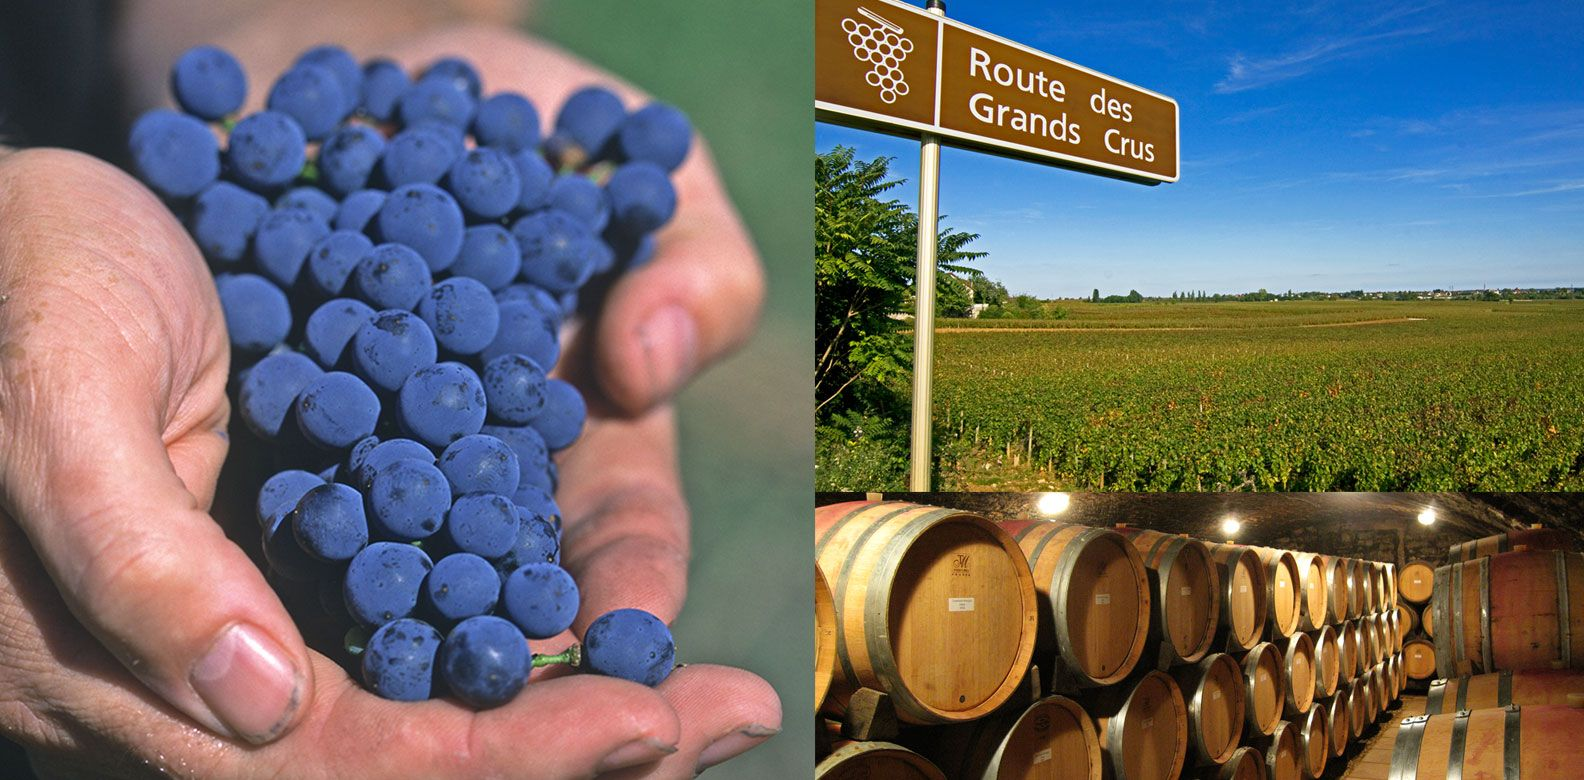 4 Amazing Wine Growing Regions To Tour The Fruits Of The Vines